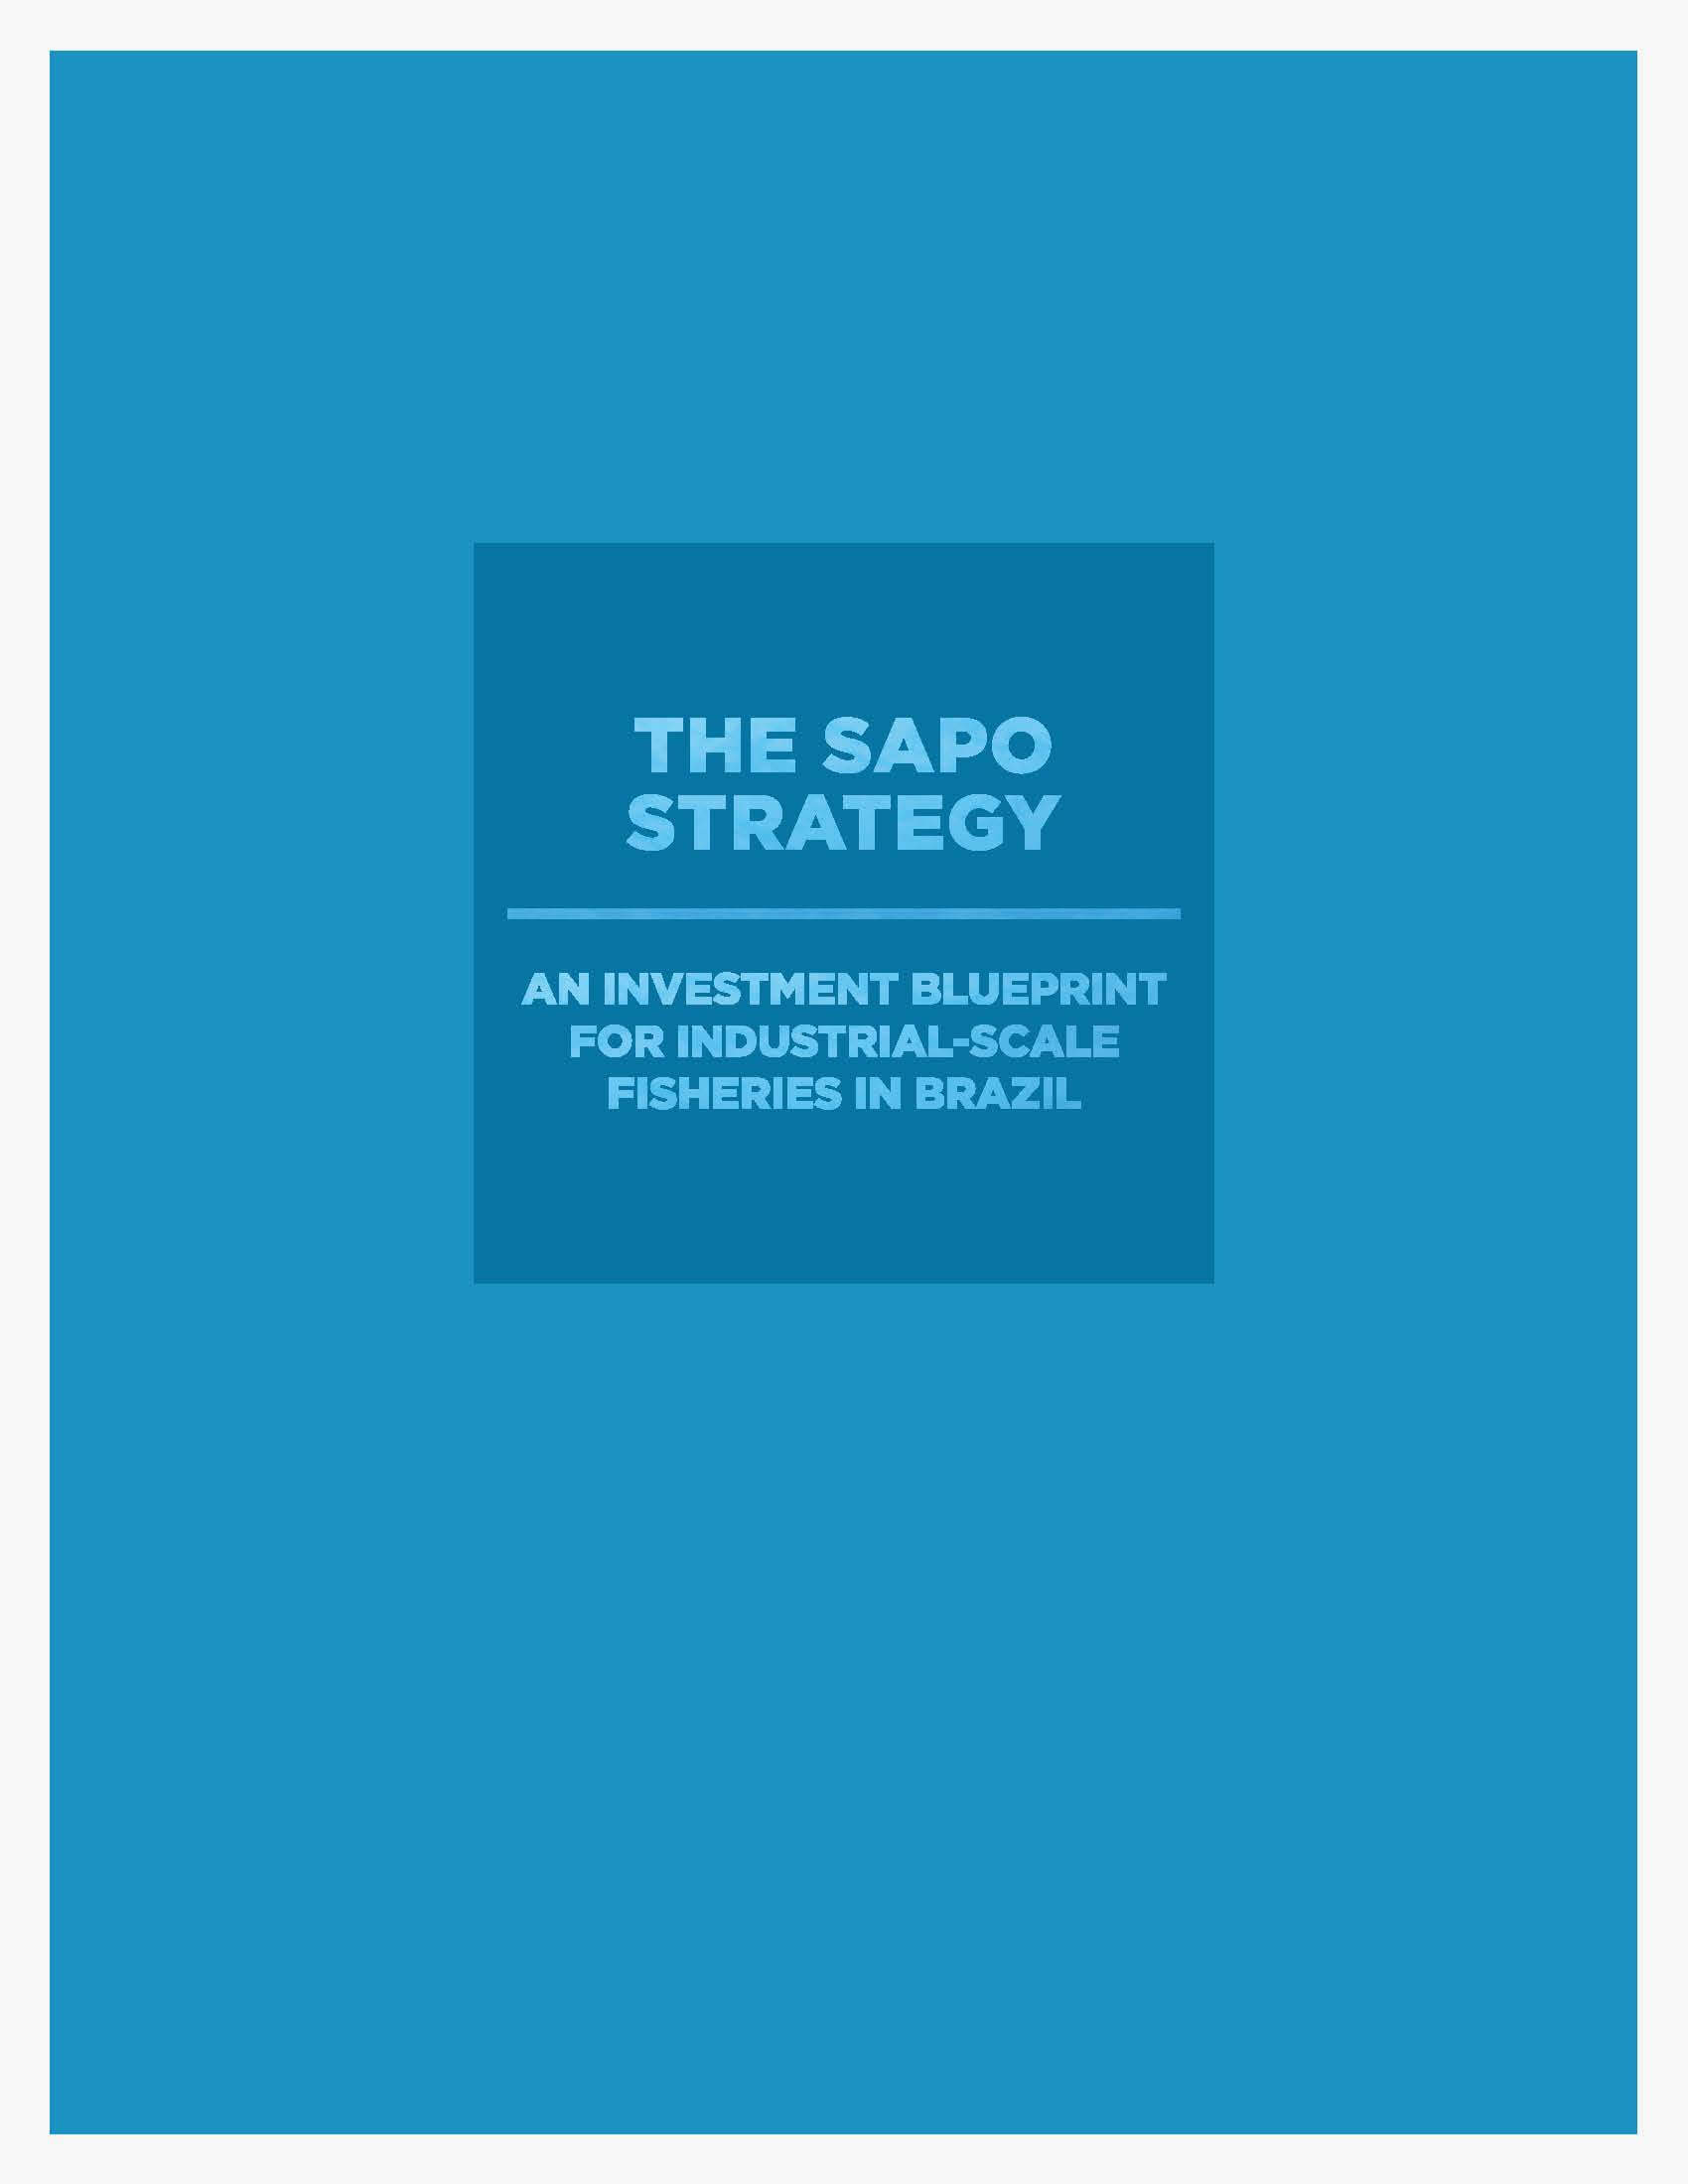 The Sapo Strategy : An Investment Blueprint for Industrial-Scale Fisheries in Brazil